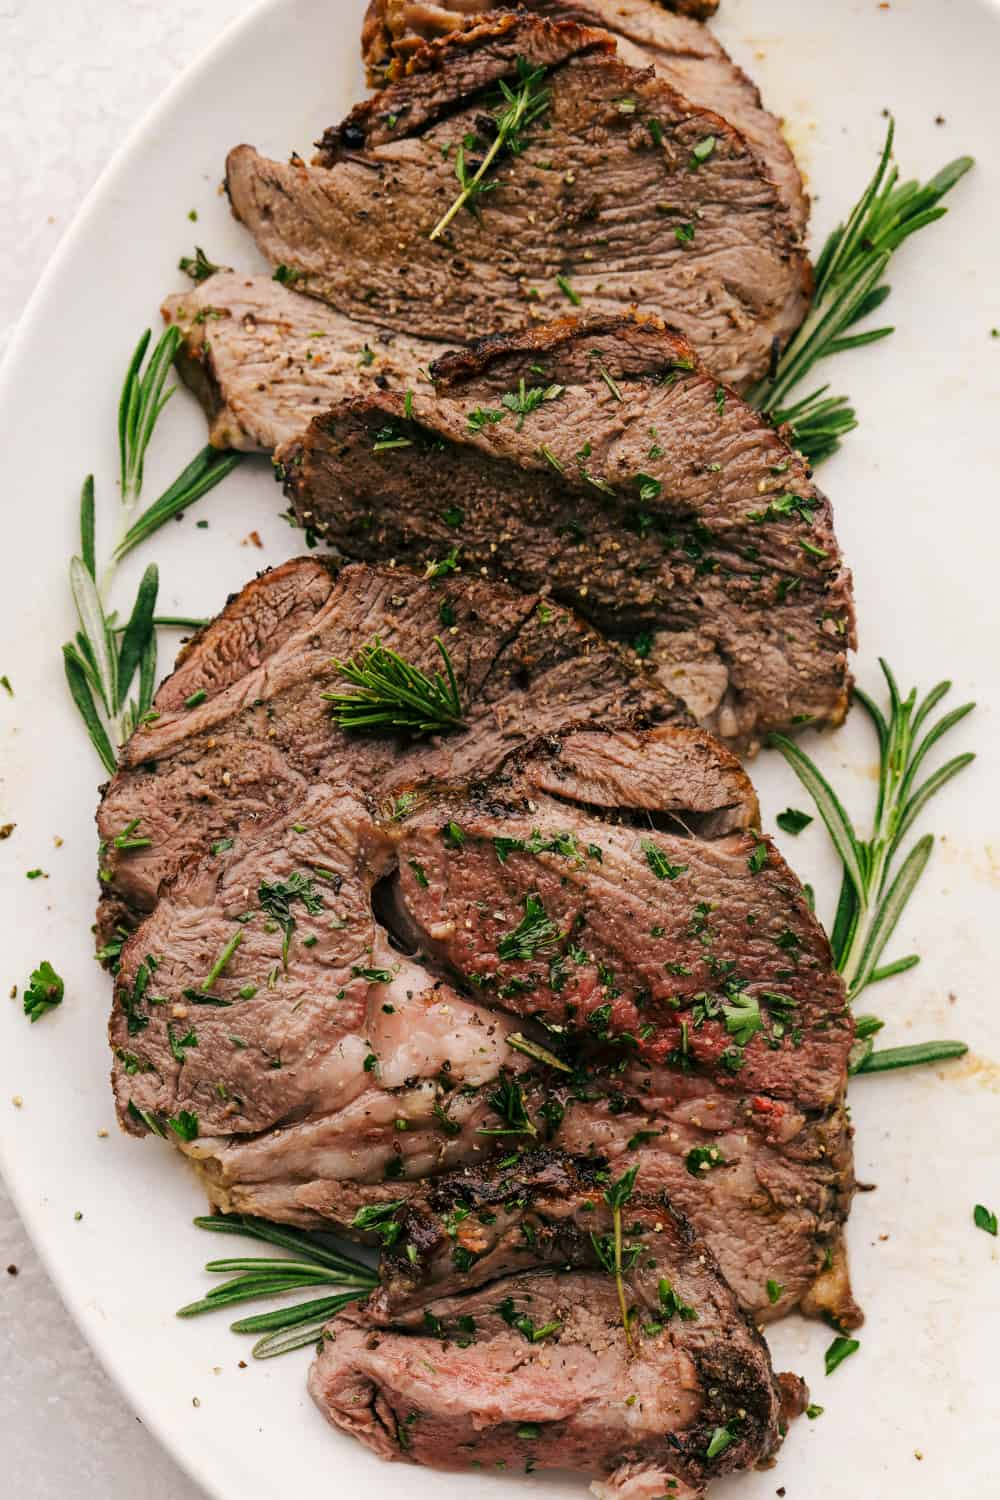 Roasted Garlic Herb Crusted Lamb on a platter.